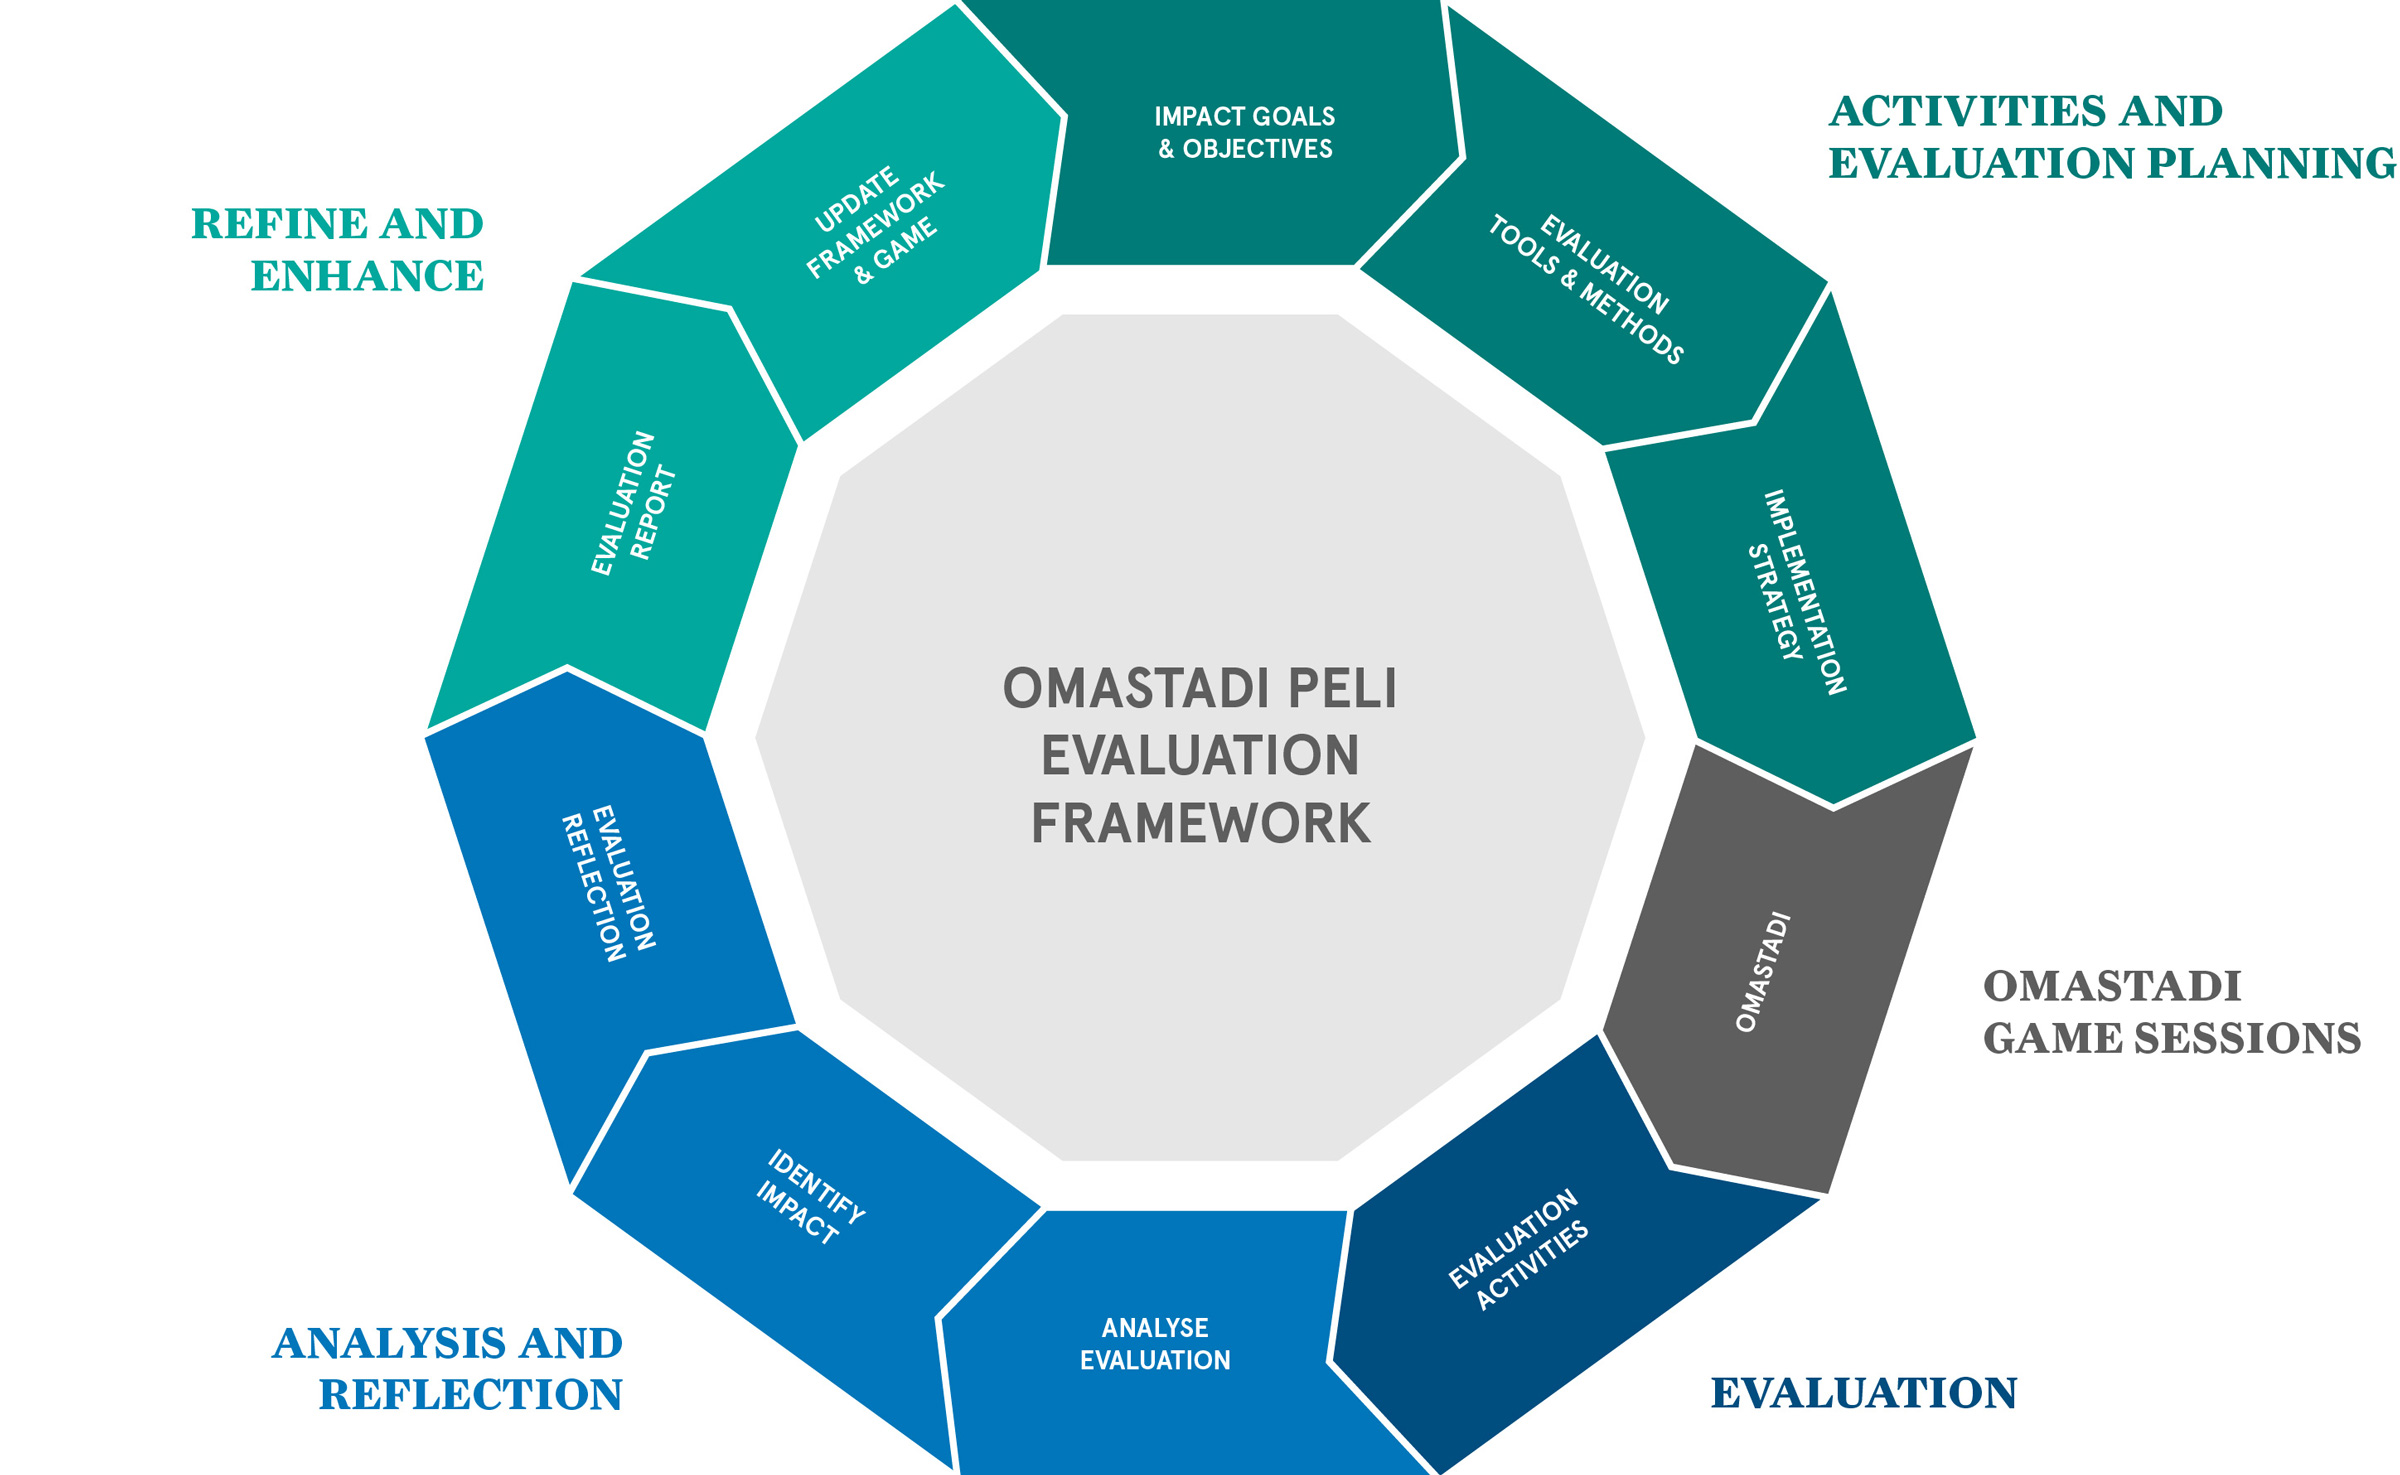 Case OmaStadi - Evaluation Framework